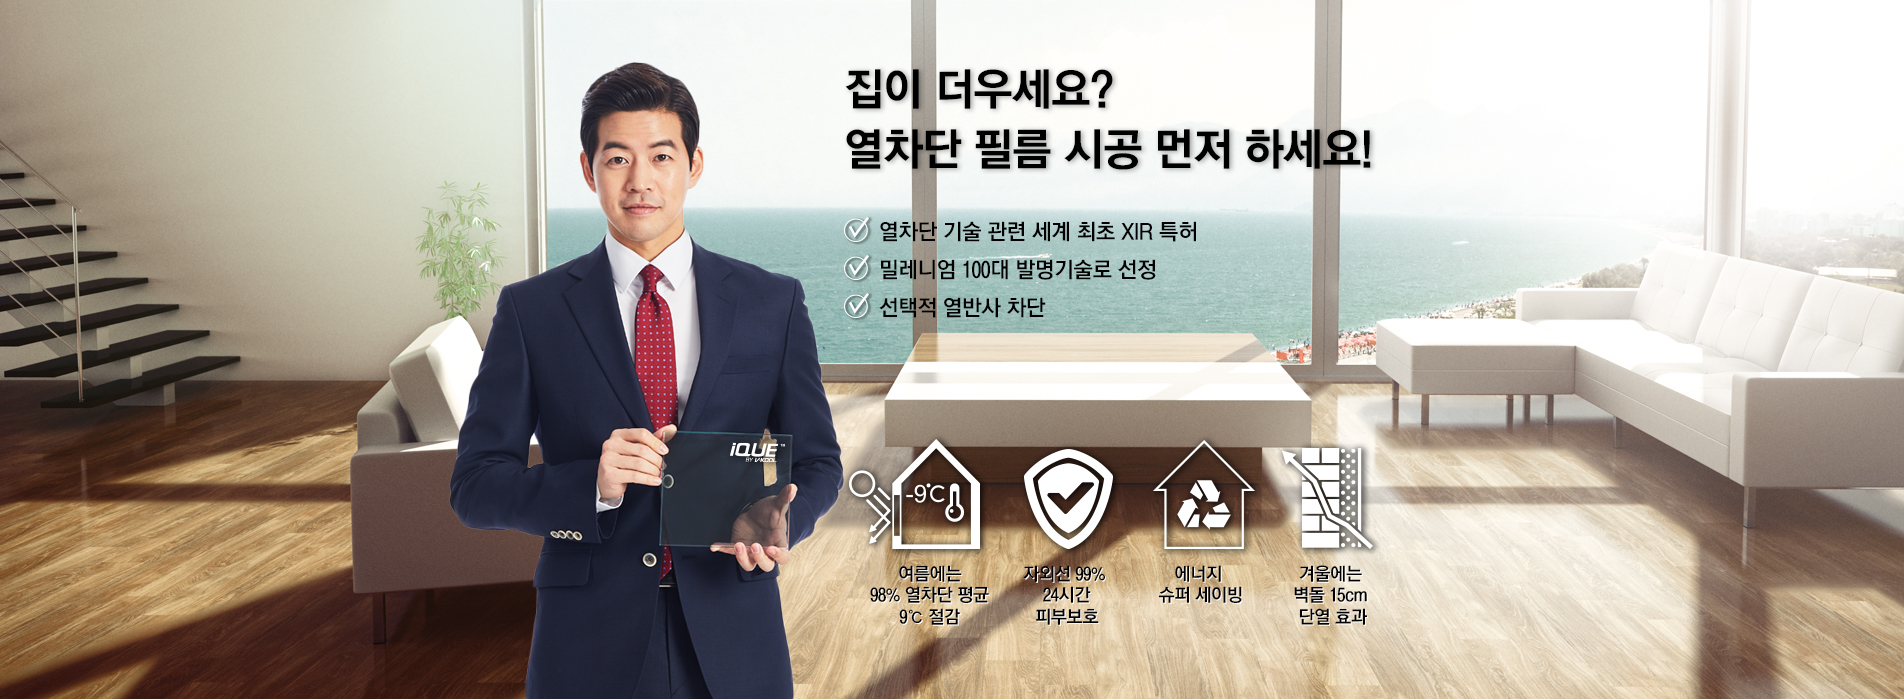 ique이상윤_홈페이지_banner